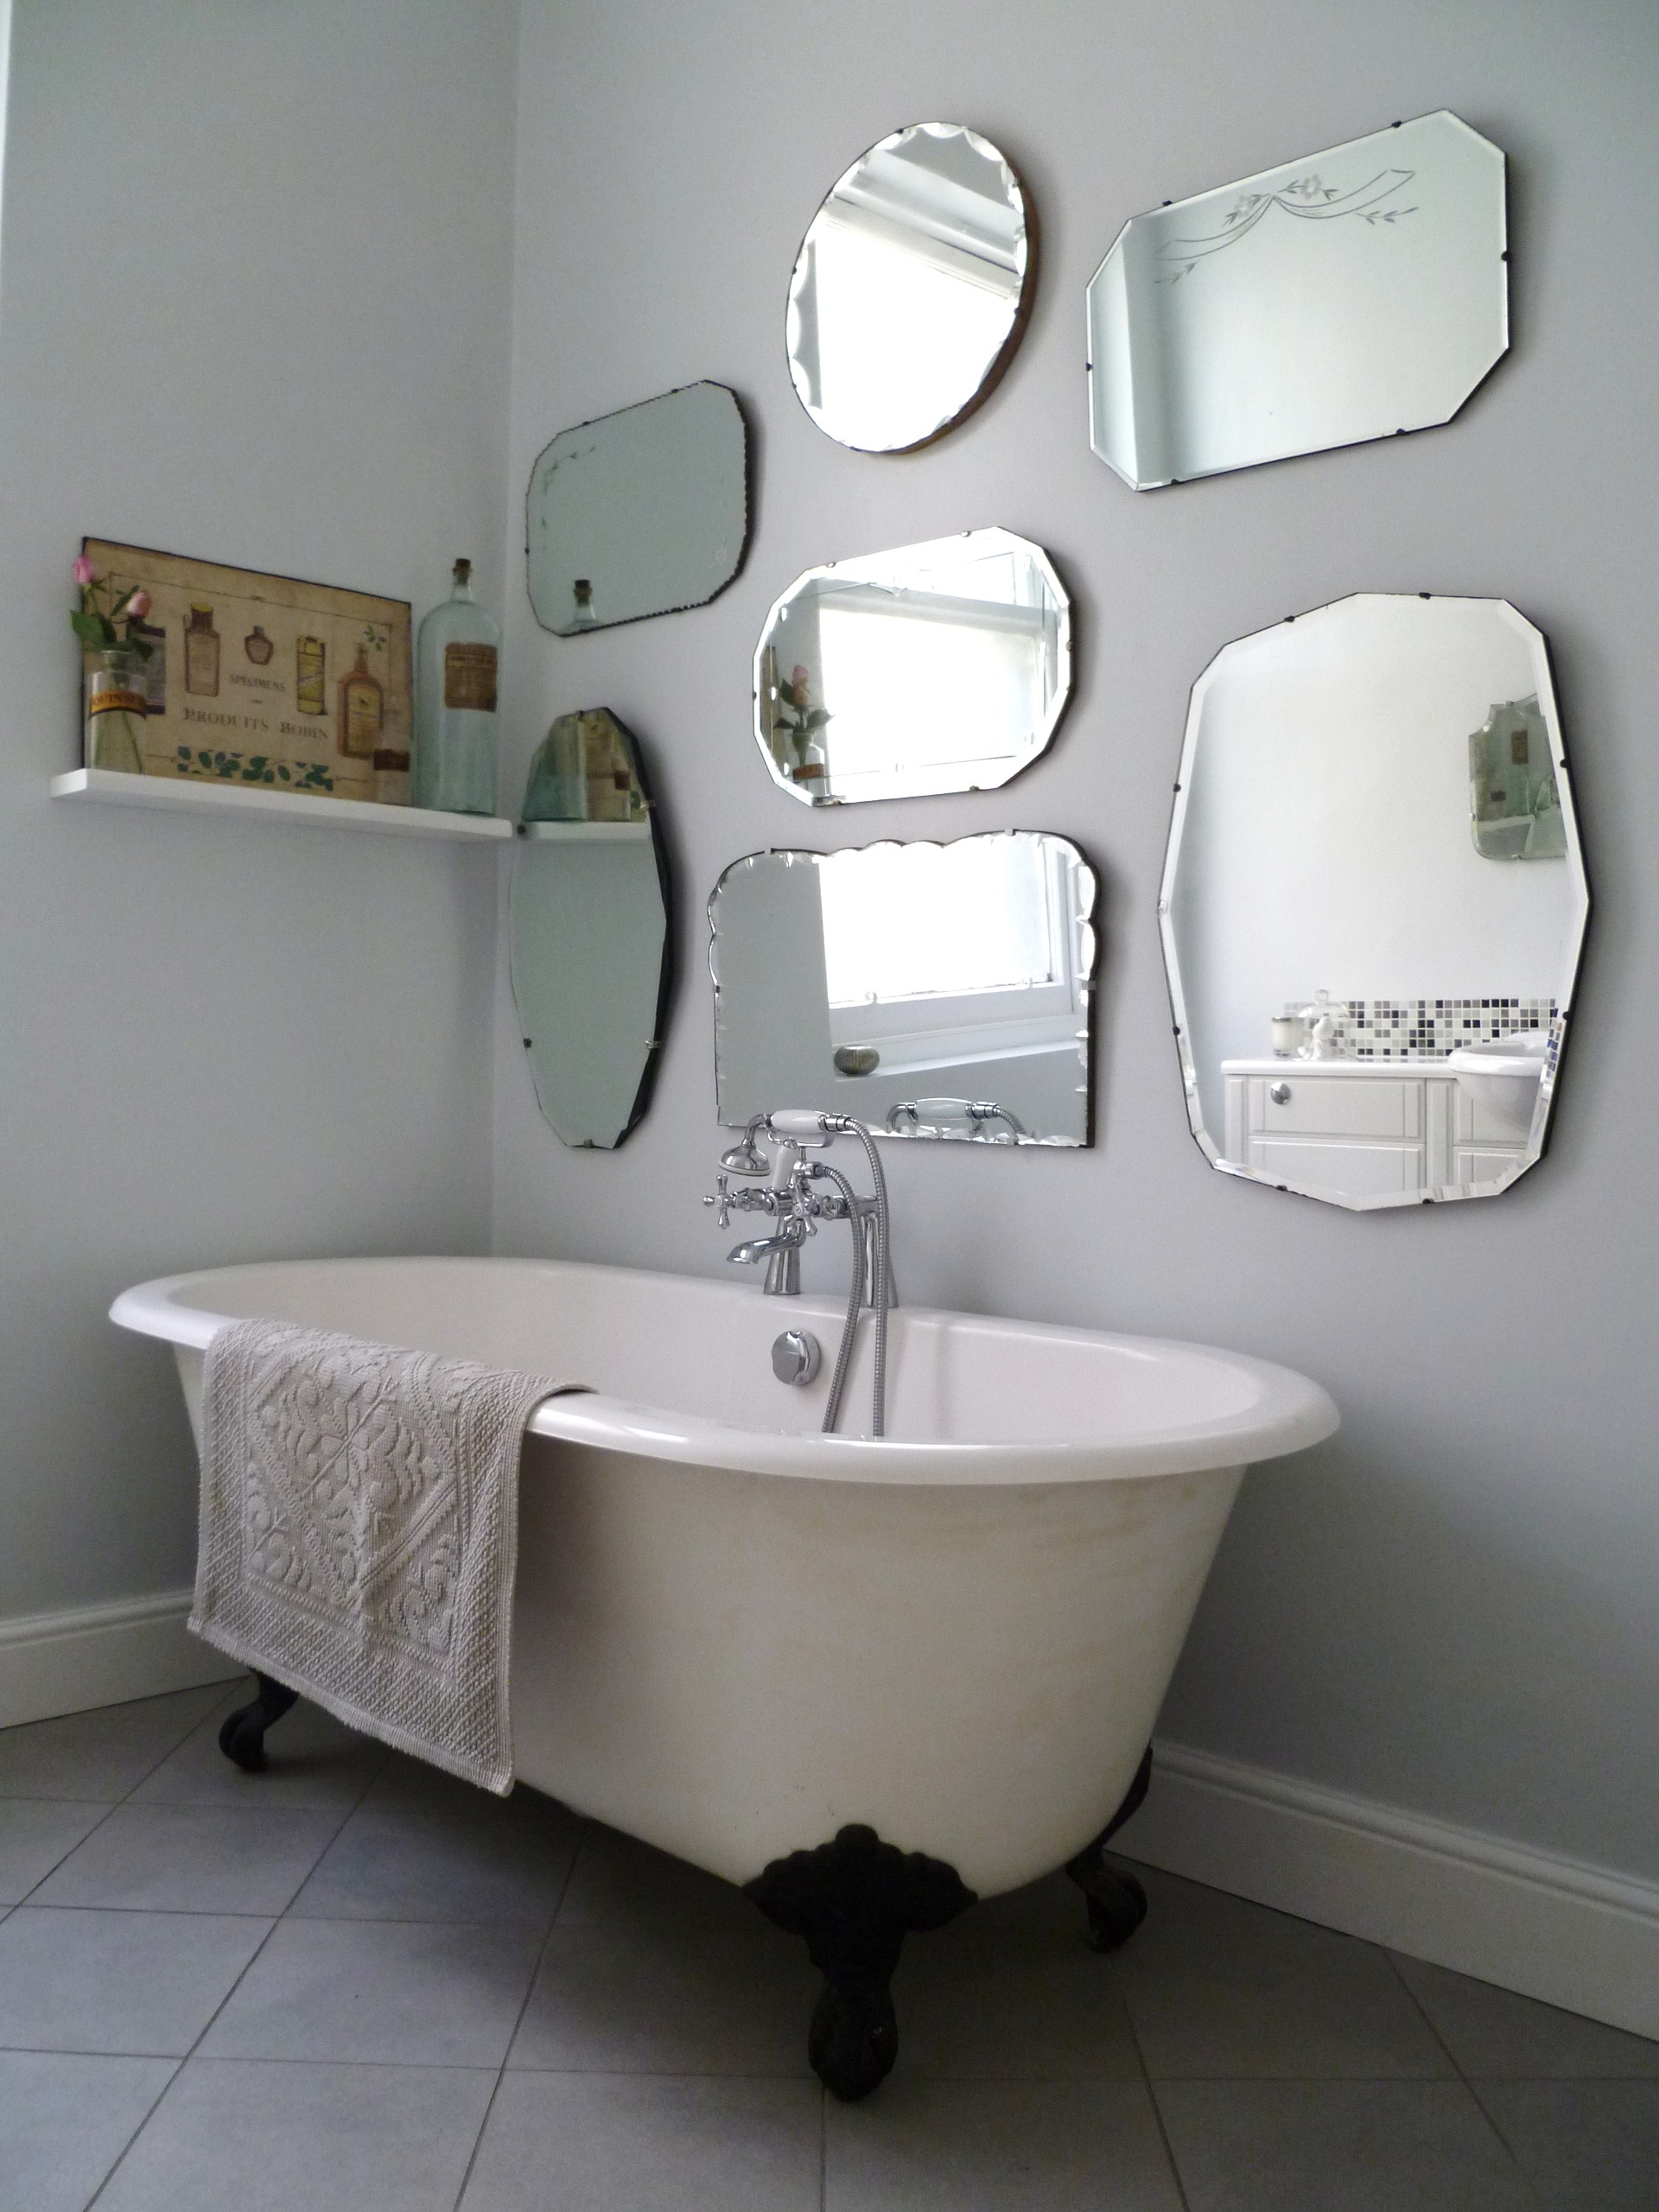 How To Hang A Display Of Vintage Mirrors Vintage Mirrors With Vintage Style Bathroom Mirrors (Image 7 of 15)